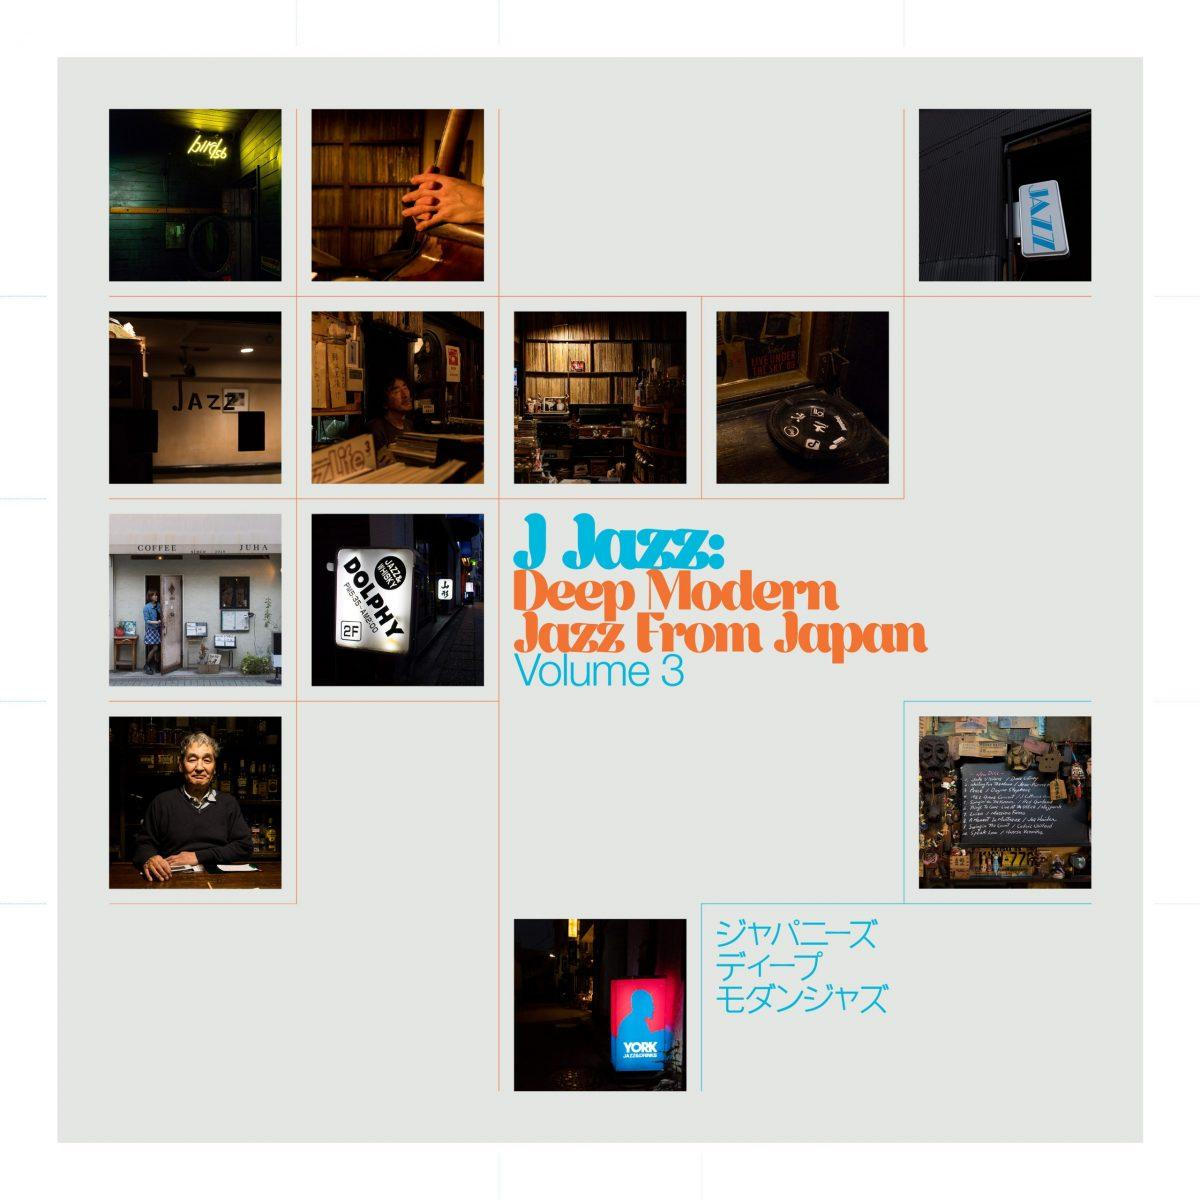 Art and Documentary Photography - Loading BBE652_J-Jazz-3_cover-scaled-3c6wg80n86p1axrltw5f5s.jpeg